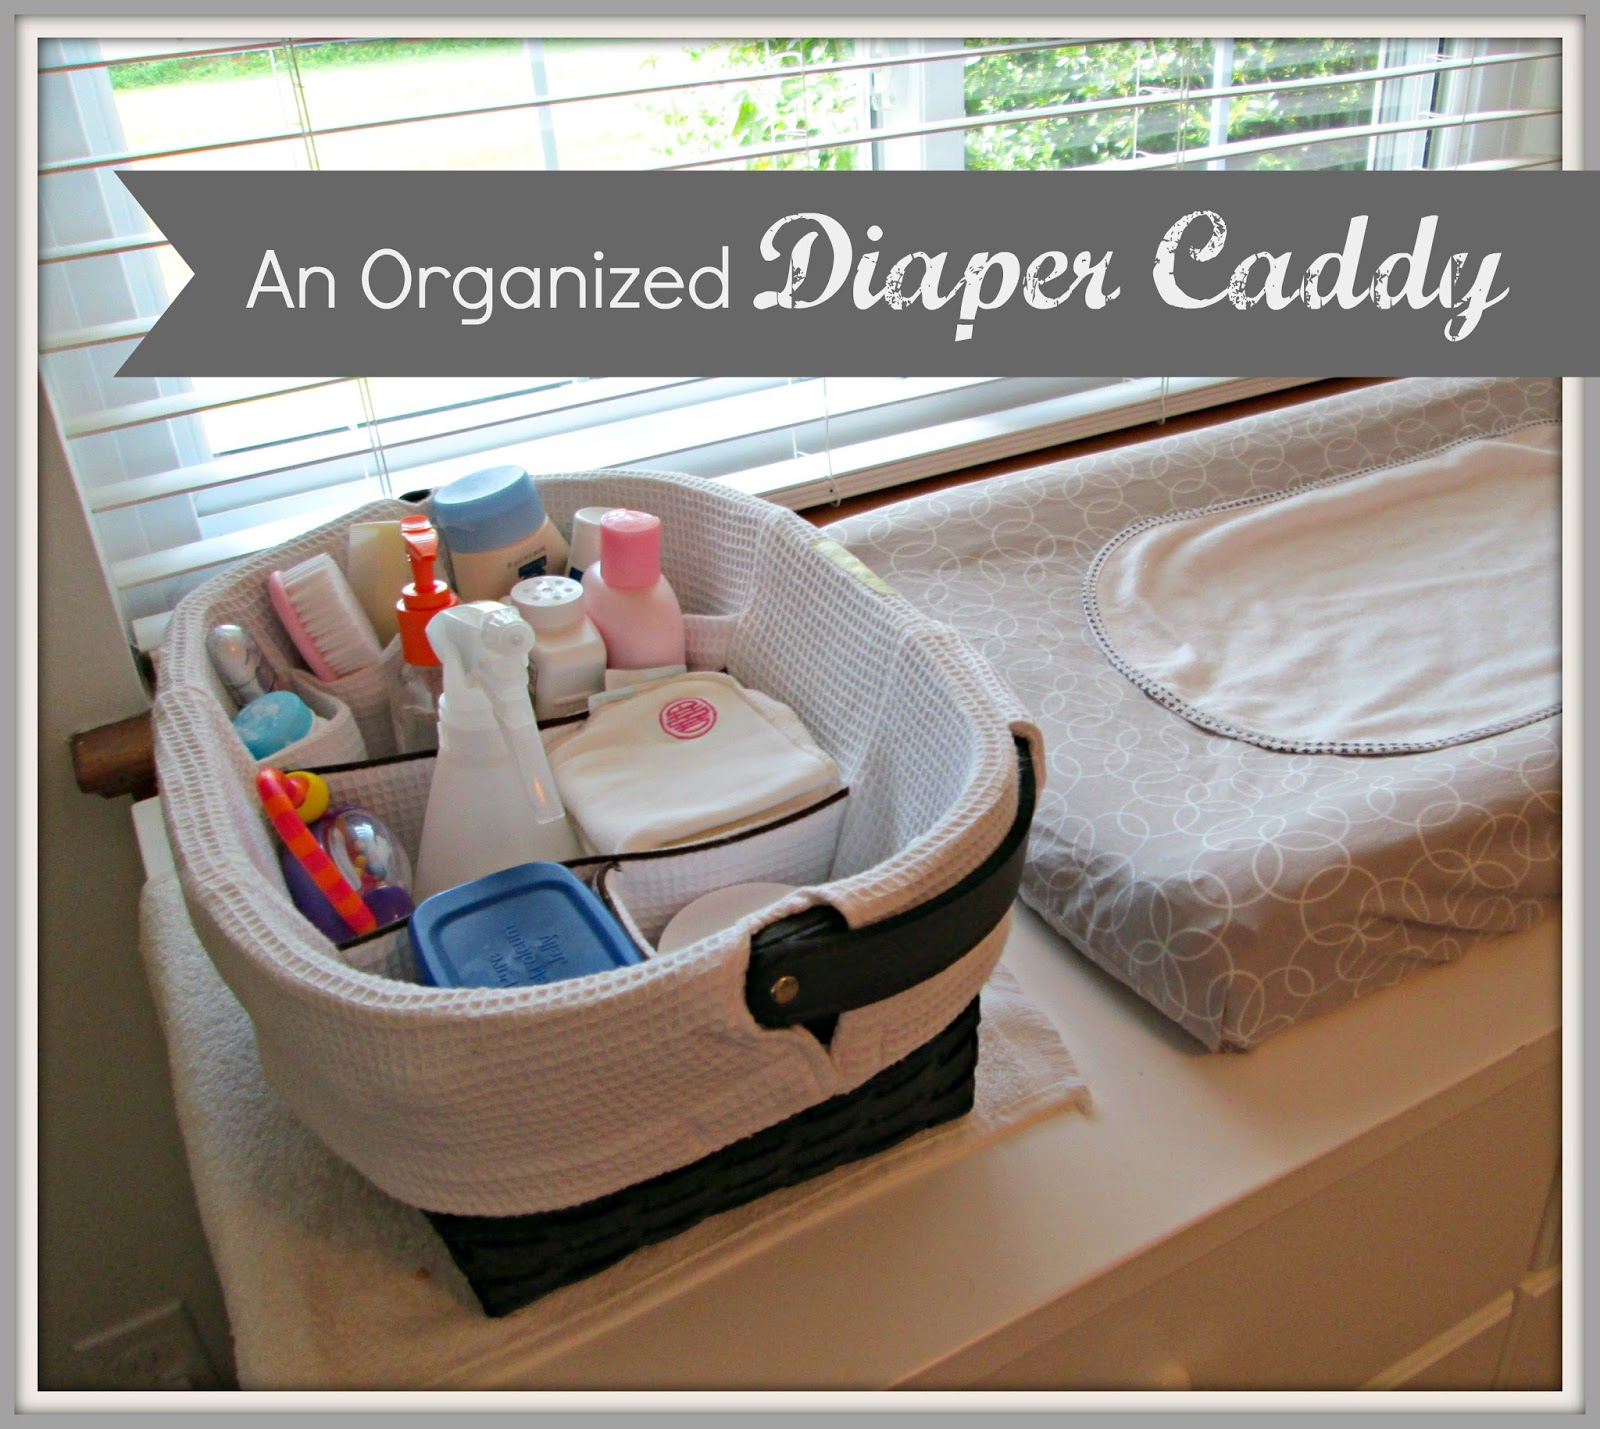 A diaper caddy You know the storage container you set on top (or within easy reach of) your changing table where you can store changing essentials. & Laurau0027s Plans: What I Keep in my Organized Diaper Caddy